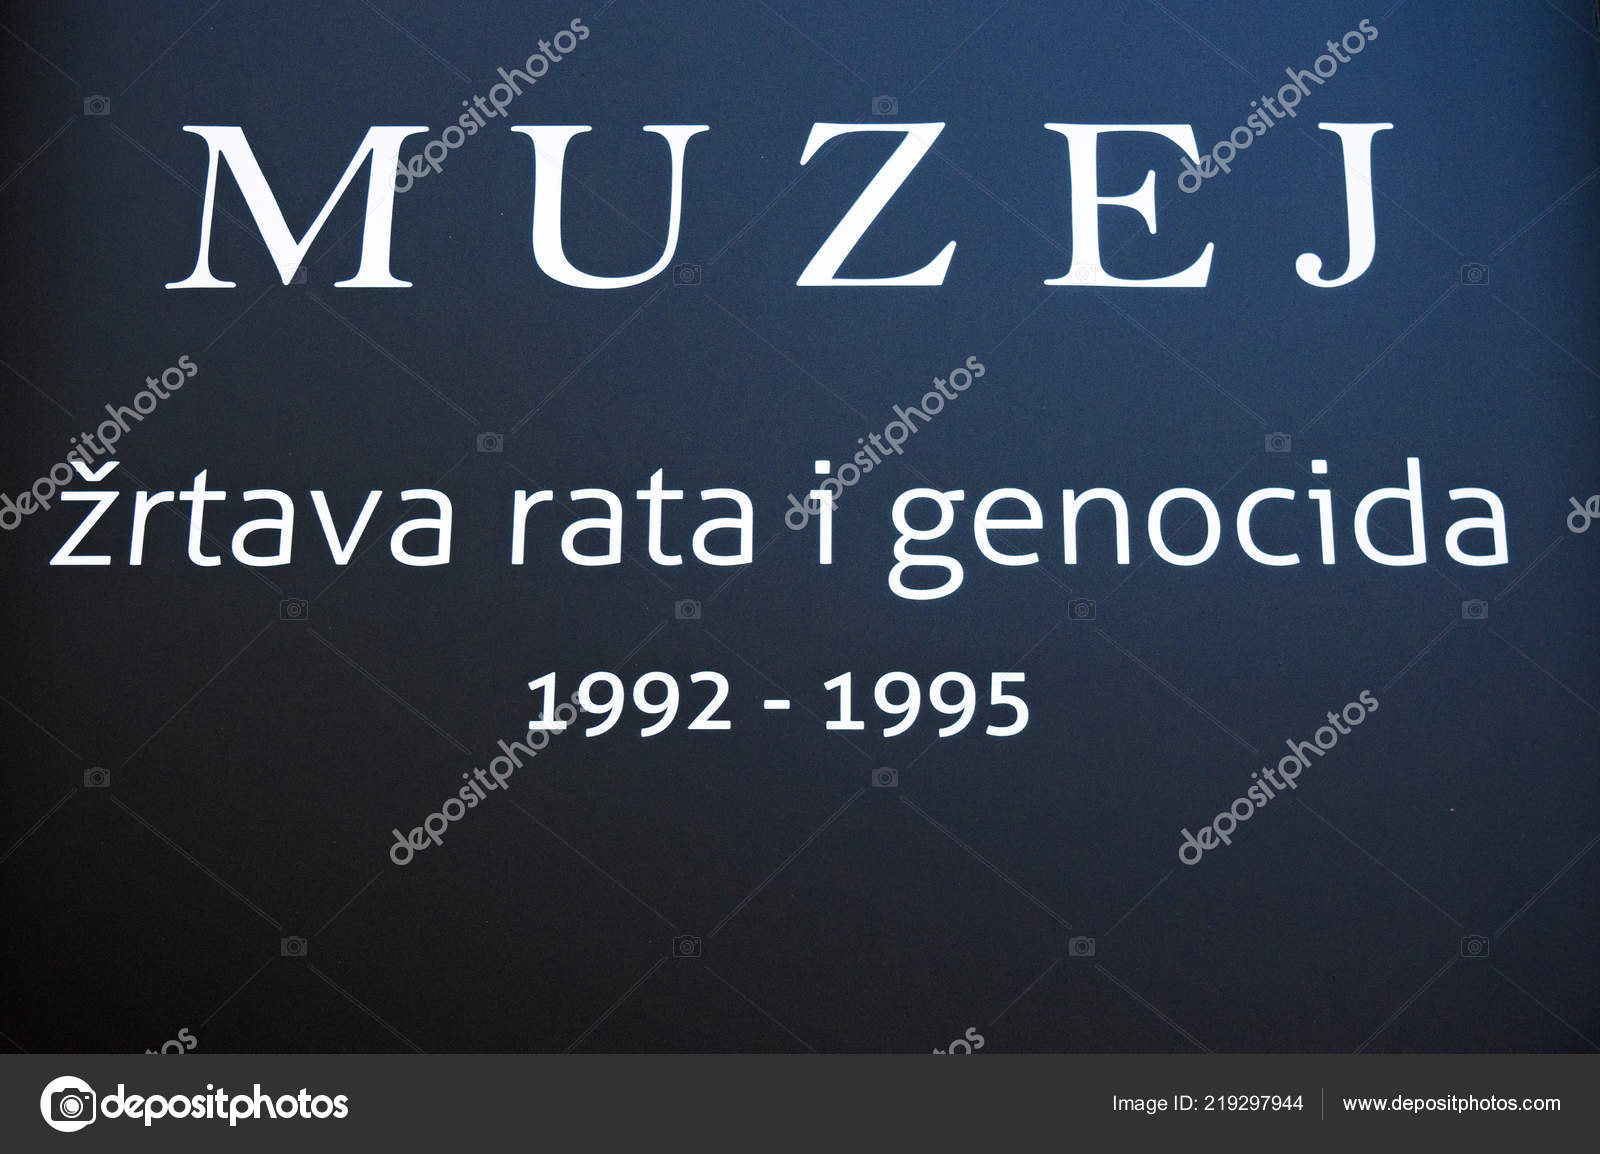 Mostar Bosnia 5 07 2018 The Sign Of Museum War And Genocide Victims 1992 1995 Testimony Bosnian Showing Personal Belongings